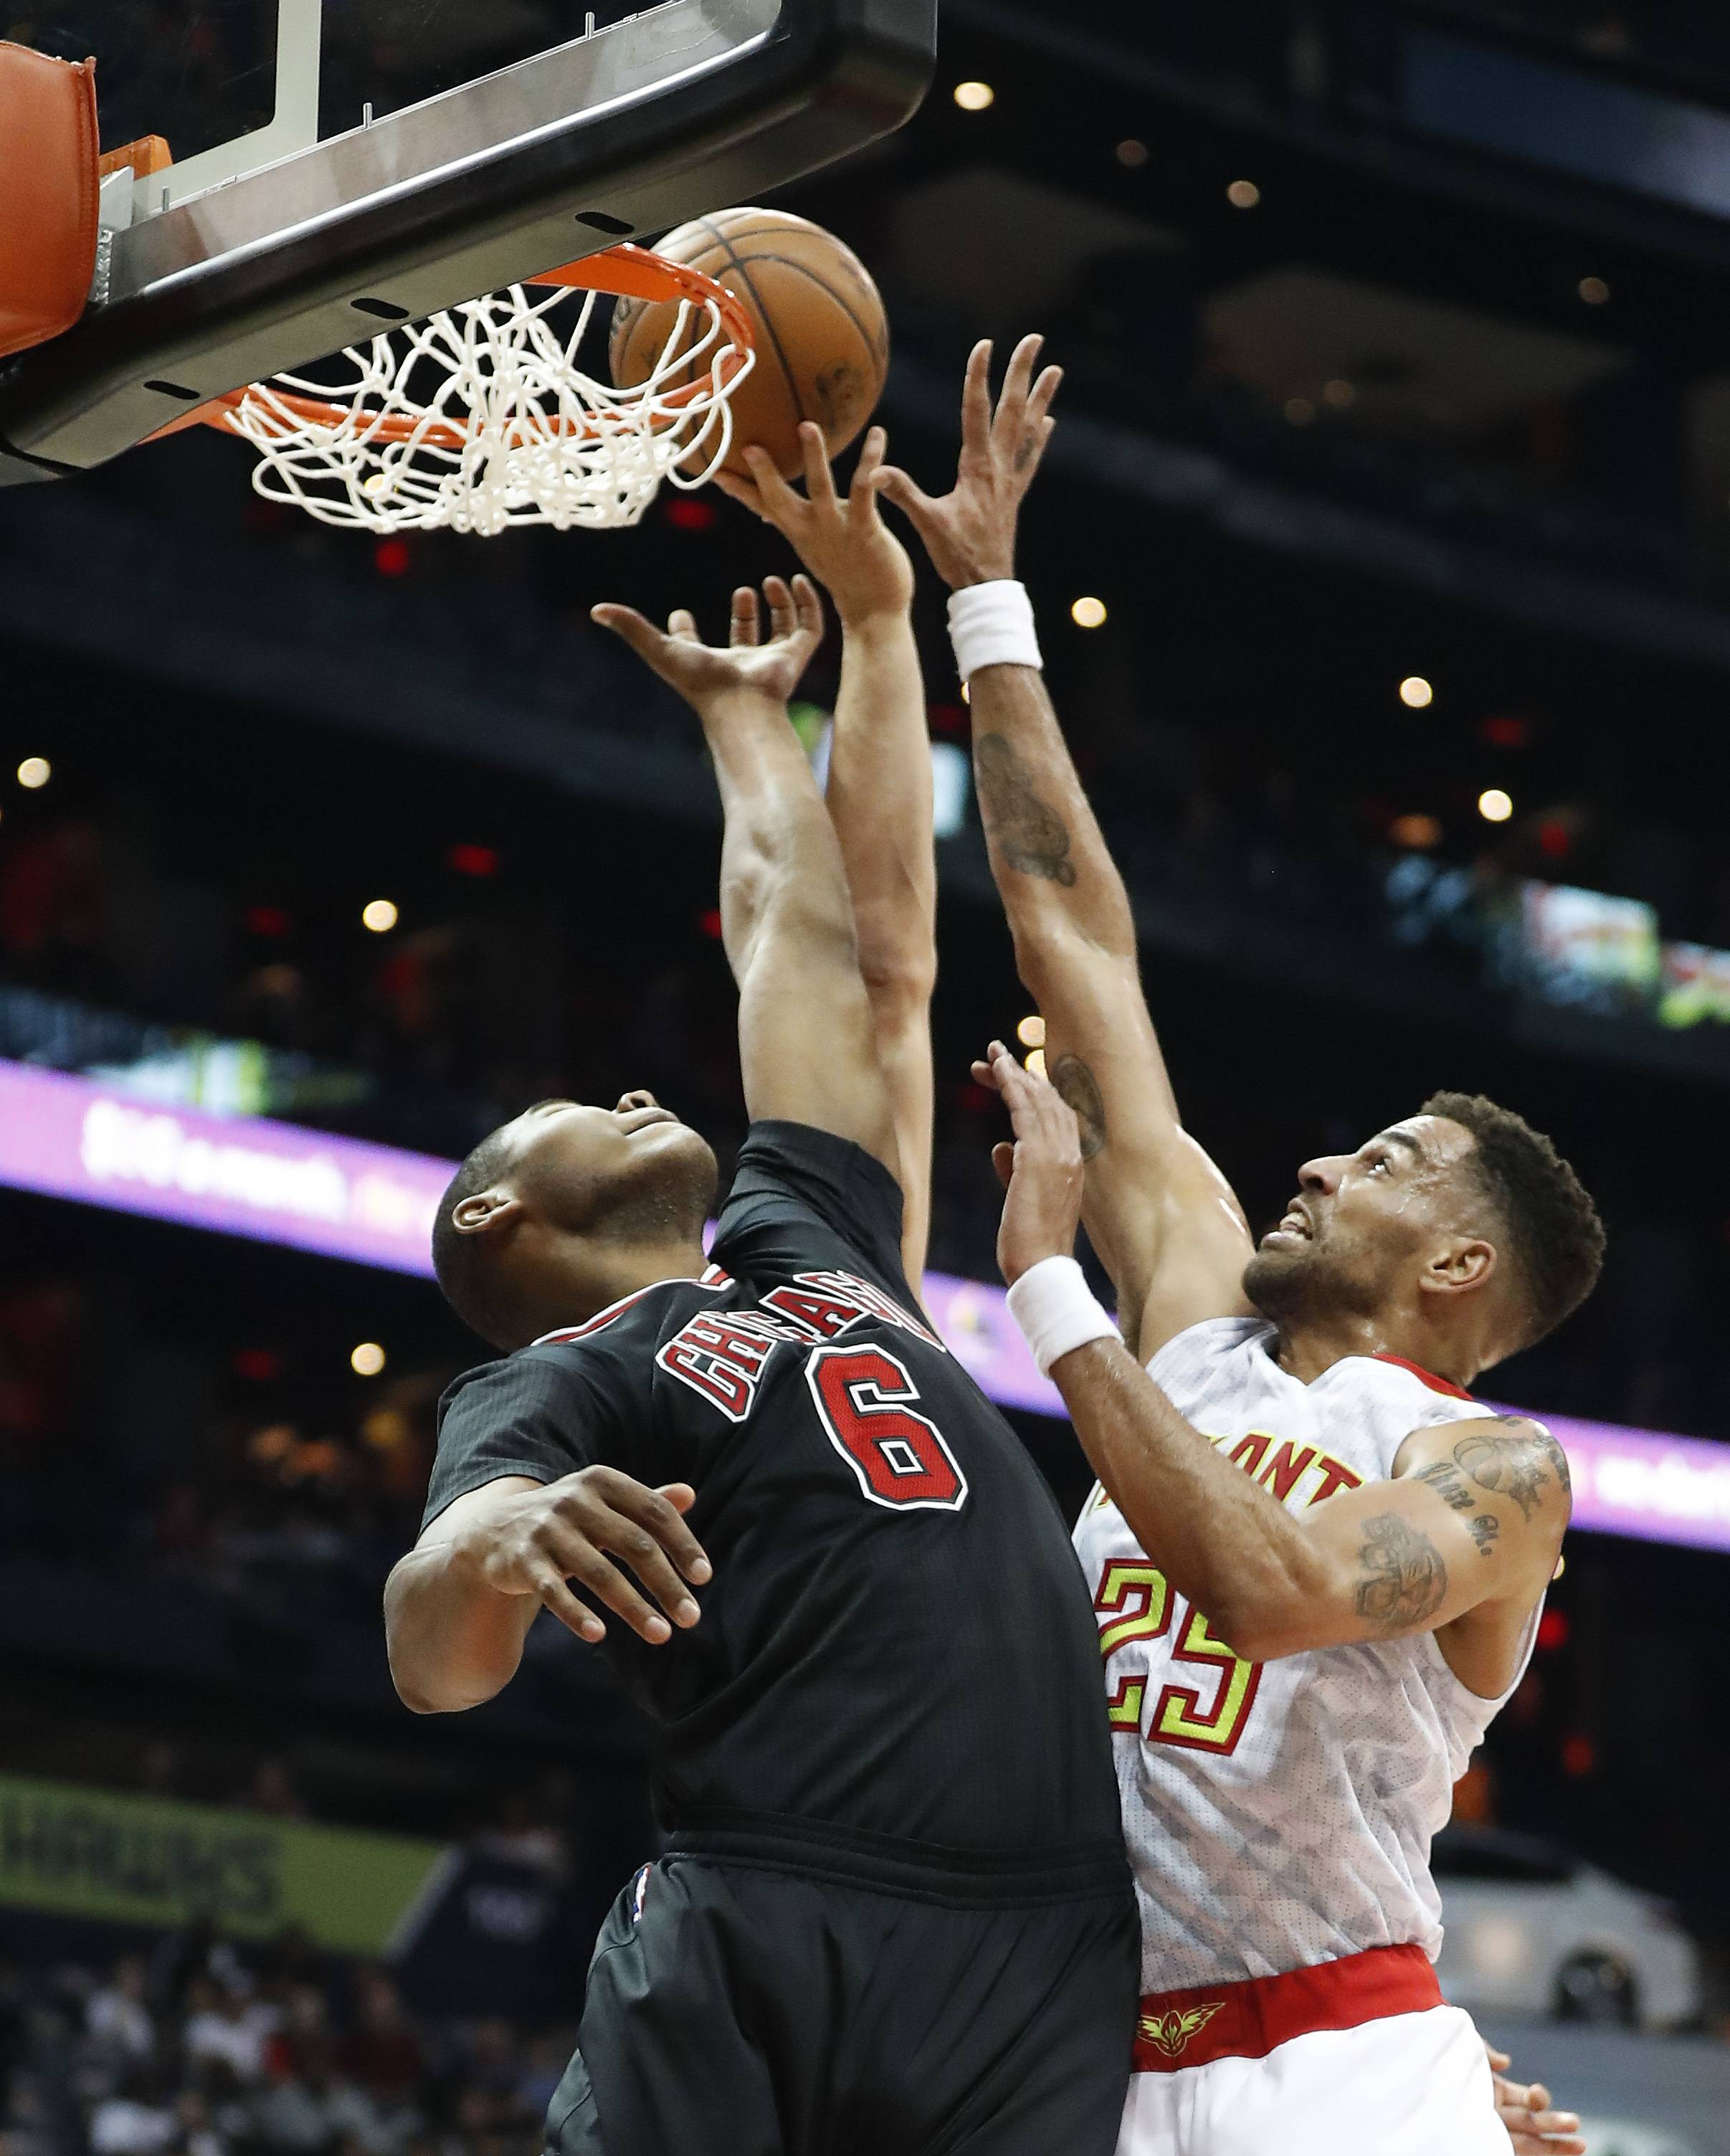 Chicago Bulls forward Cristiano Felicio (6) is defended by Atlanta Hawks forward Thabo Sefolosha (25) as he goes up for a basket in the first half of an NBA basketball game Friday, Jan. 20, 2017, in Atlanta.